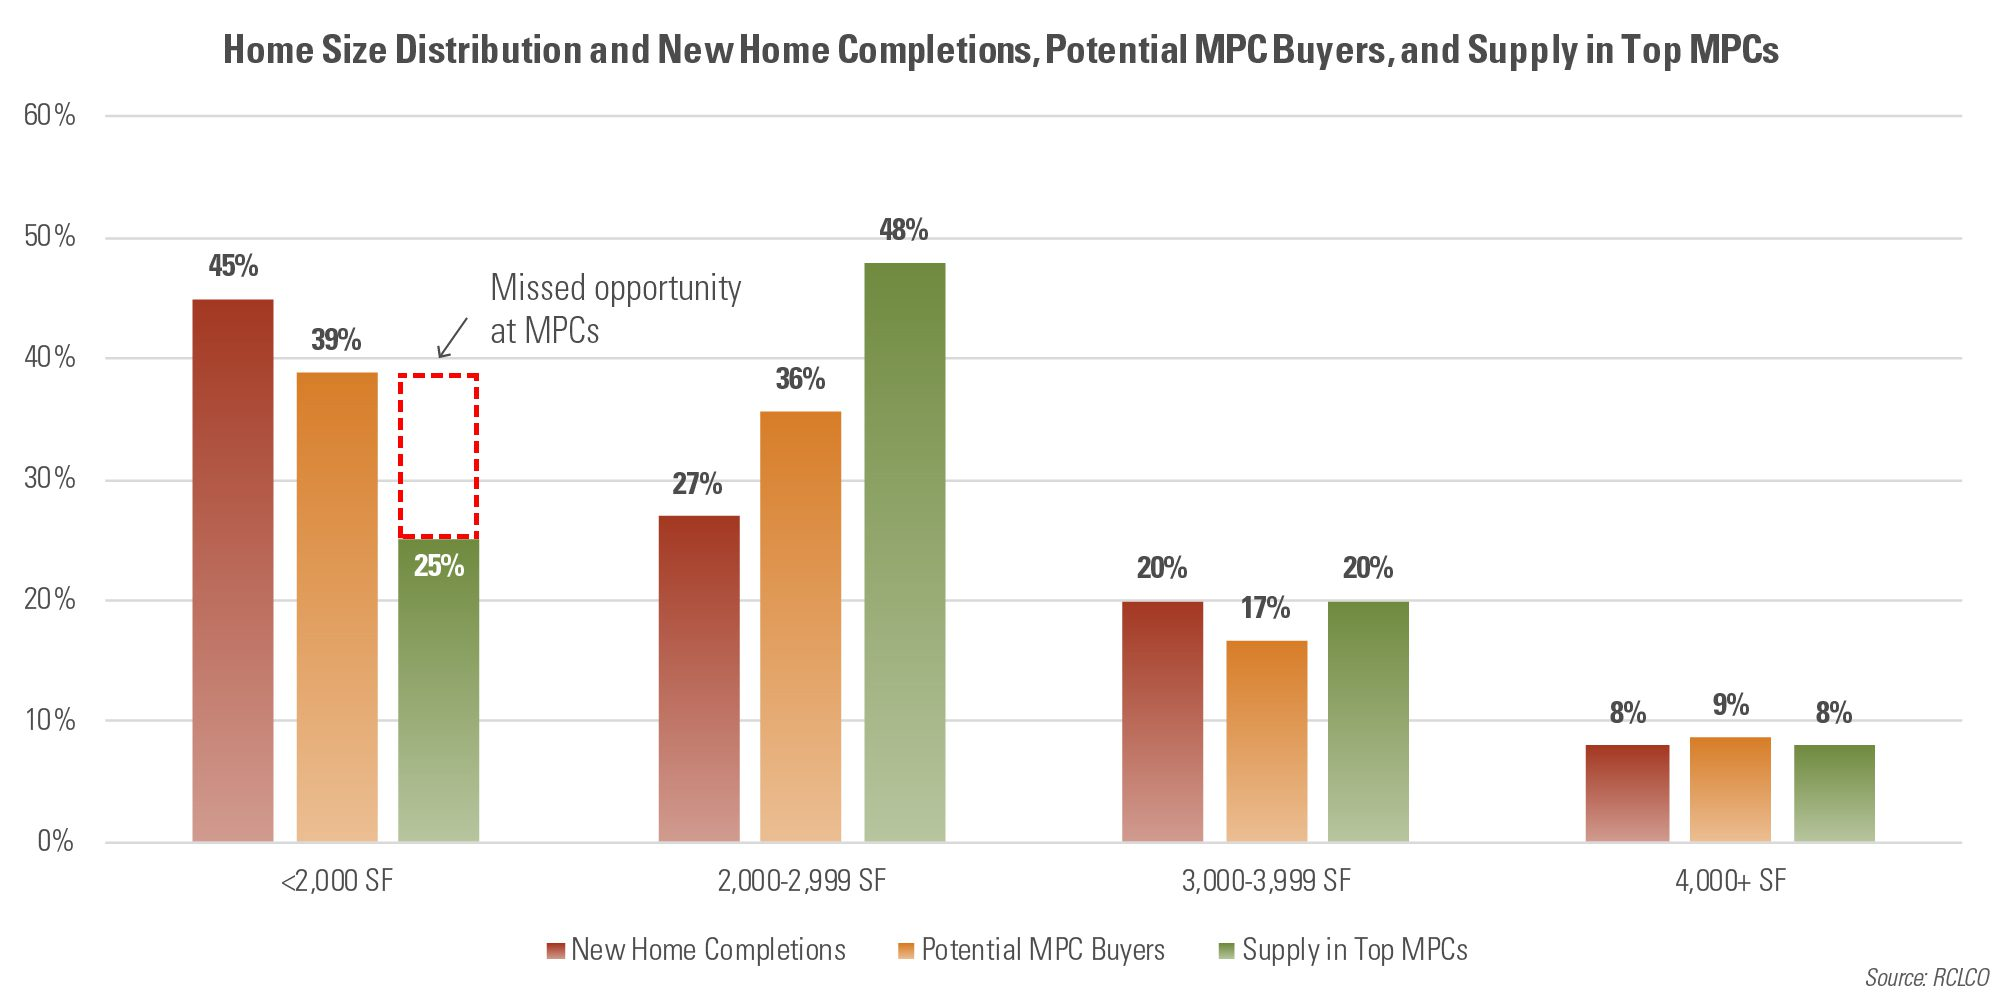 Home Size Distribution and New Home Completions, Potential MPC Buyers, and Supply in Top MPCs